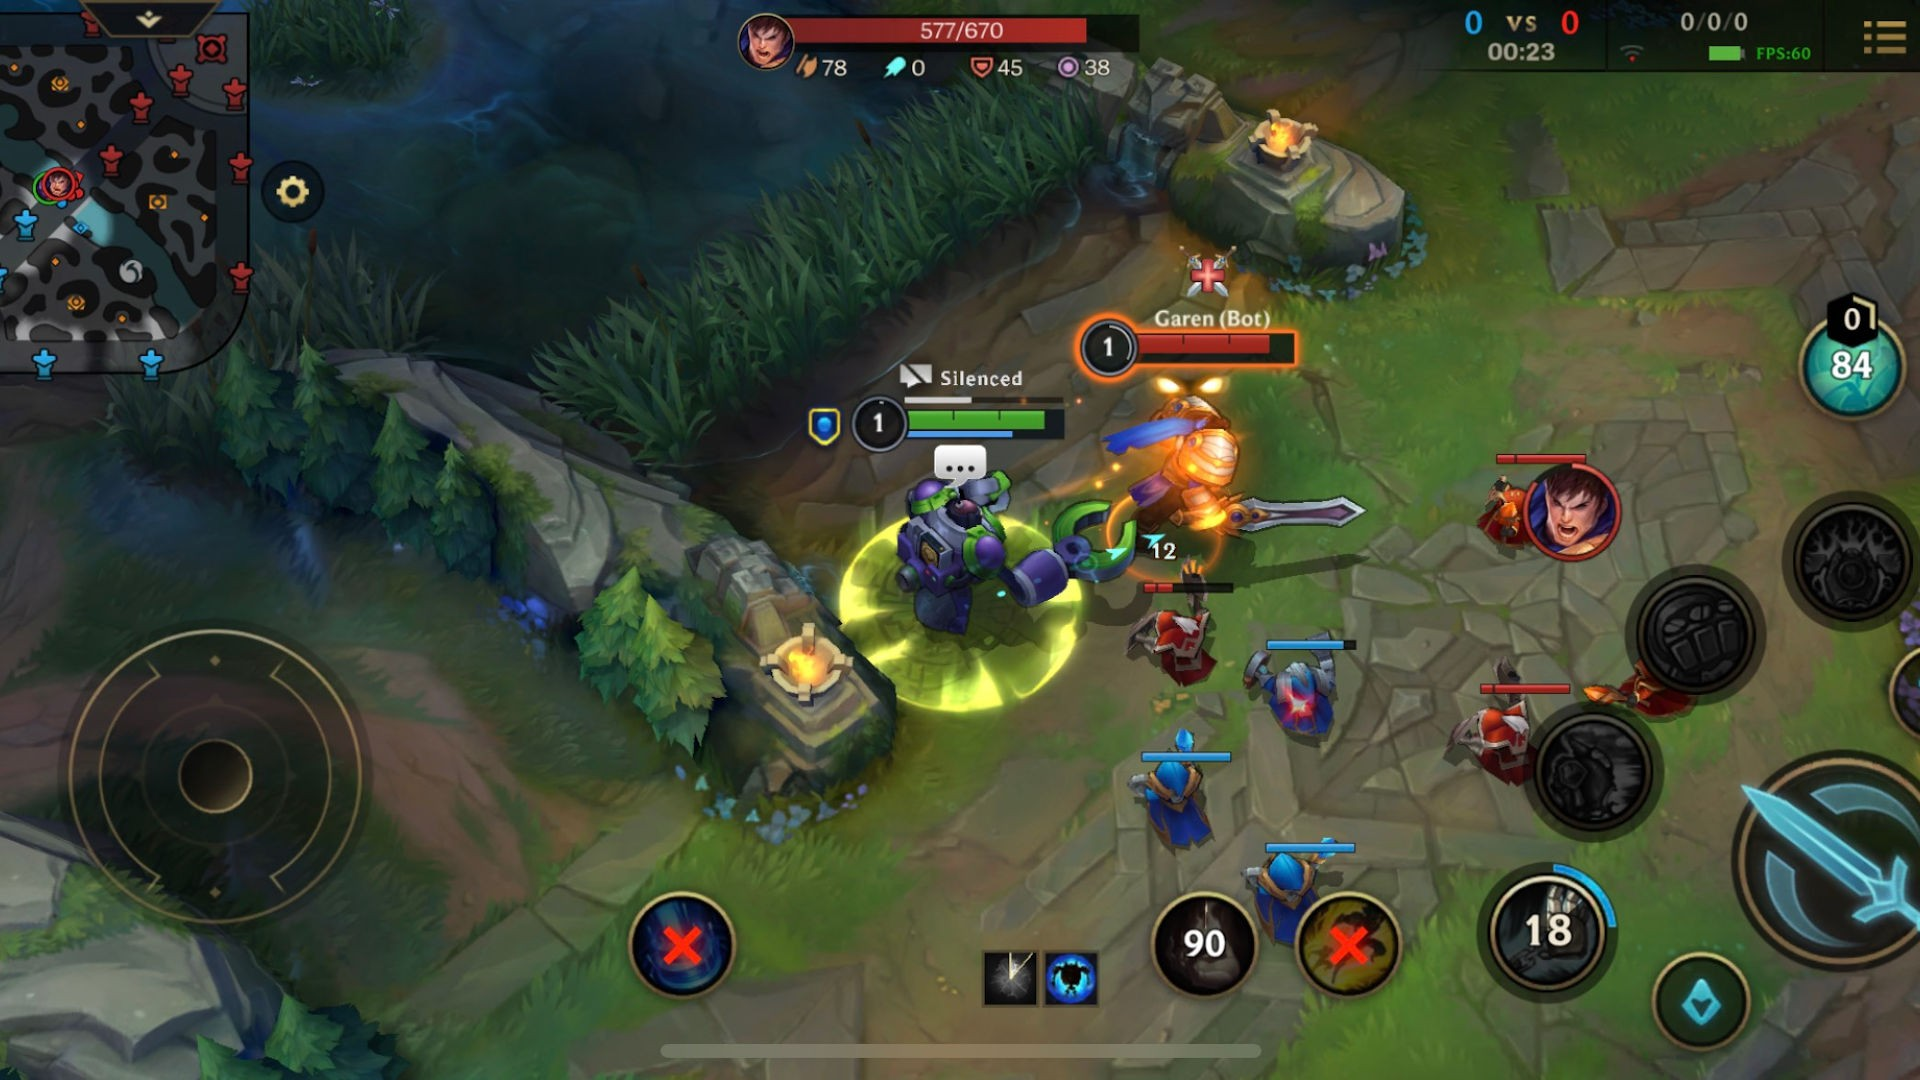 How To Get Blue Motes In League Of Legends: Wild Rift